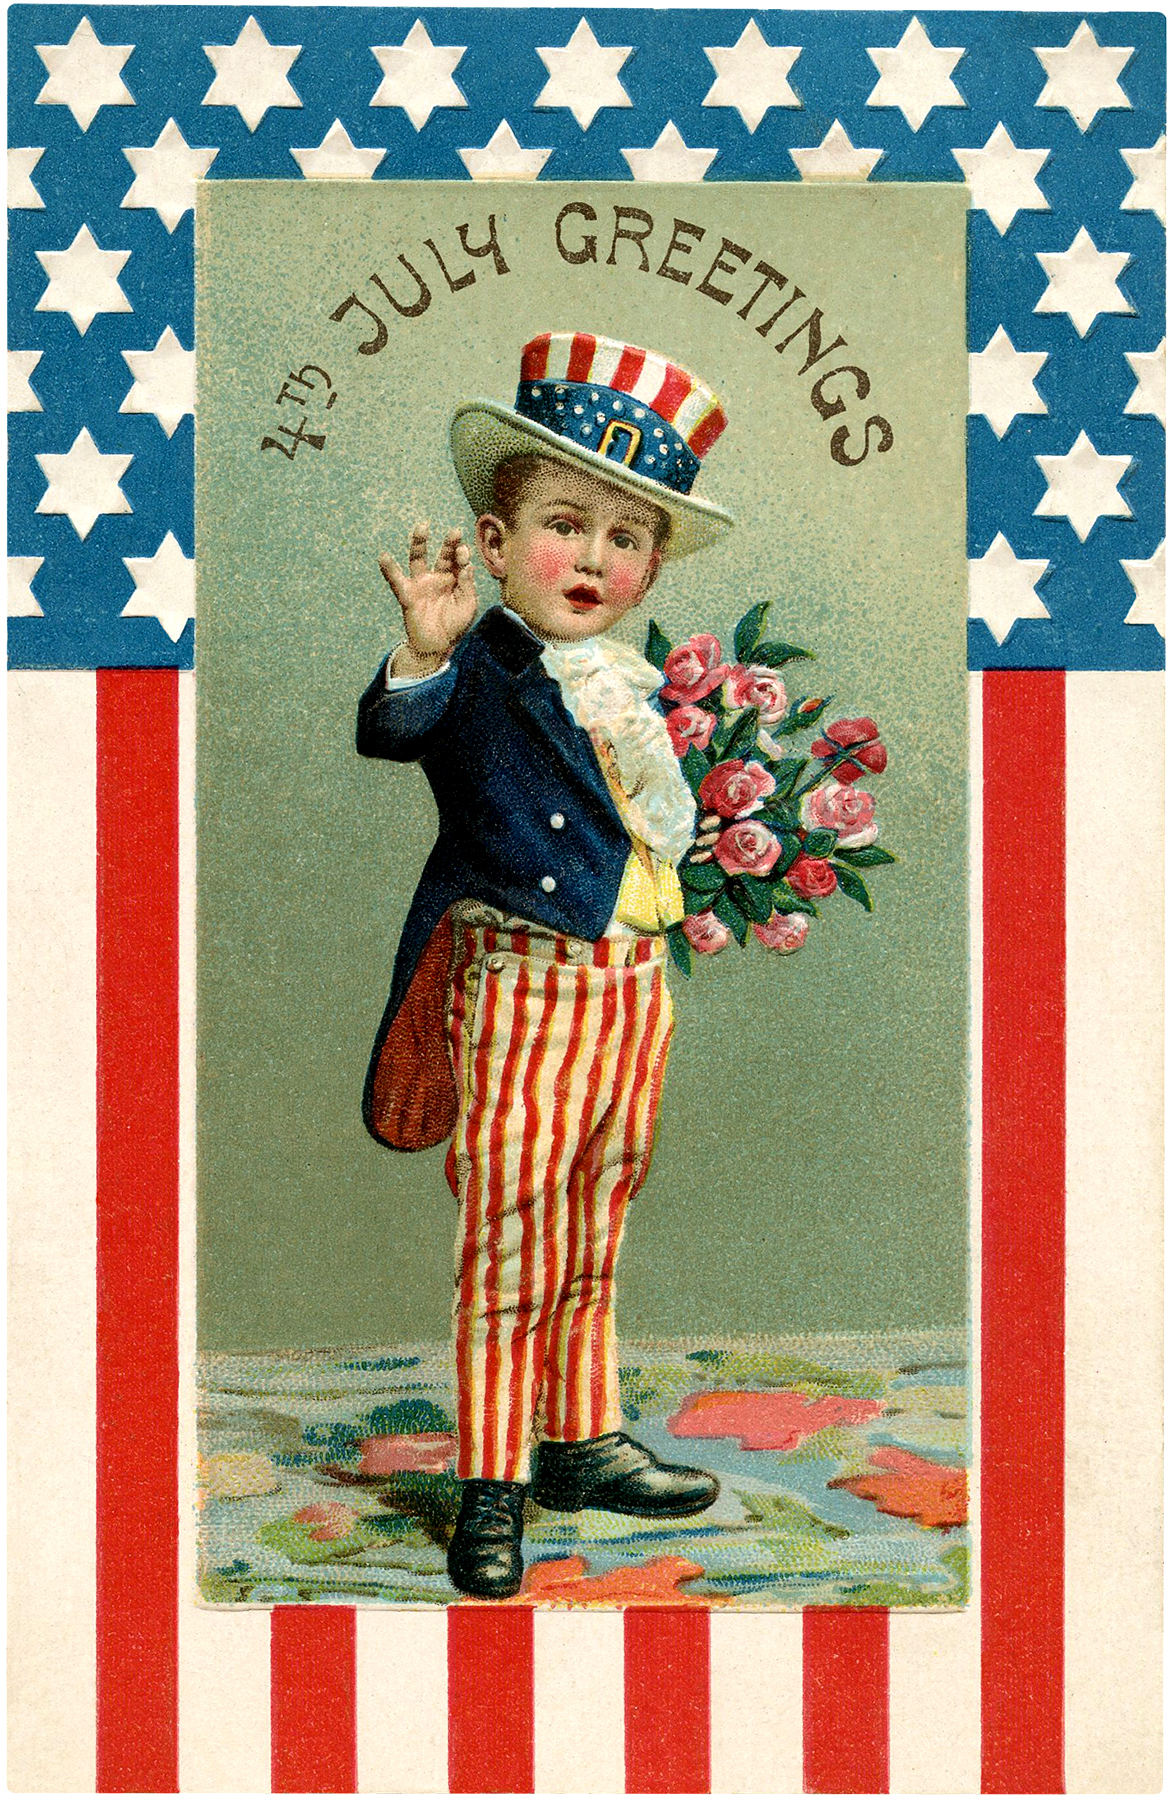 Vintage Young Uncle Sam Image